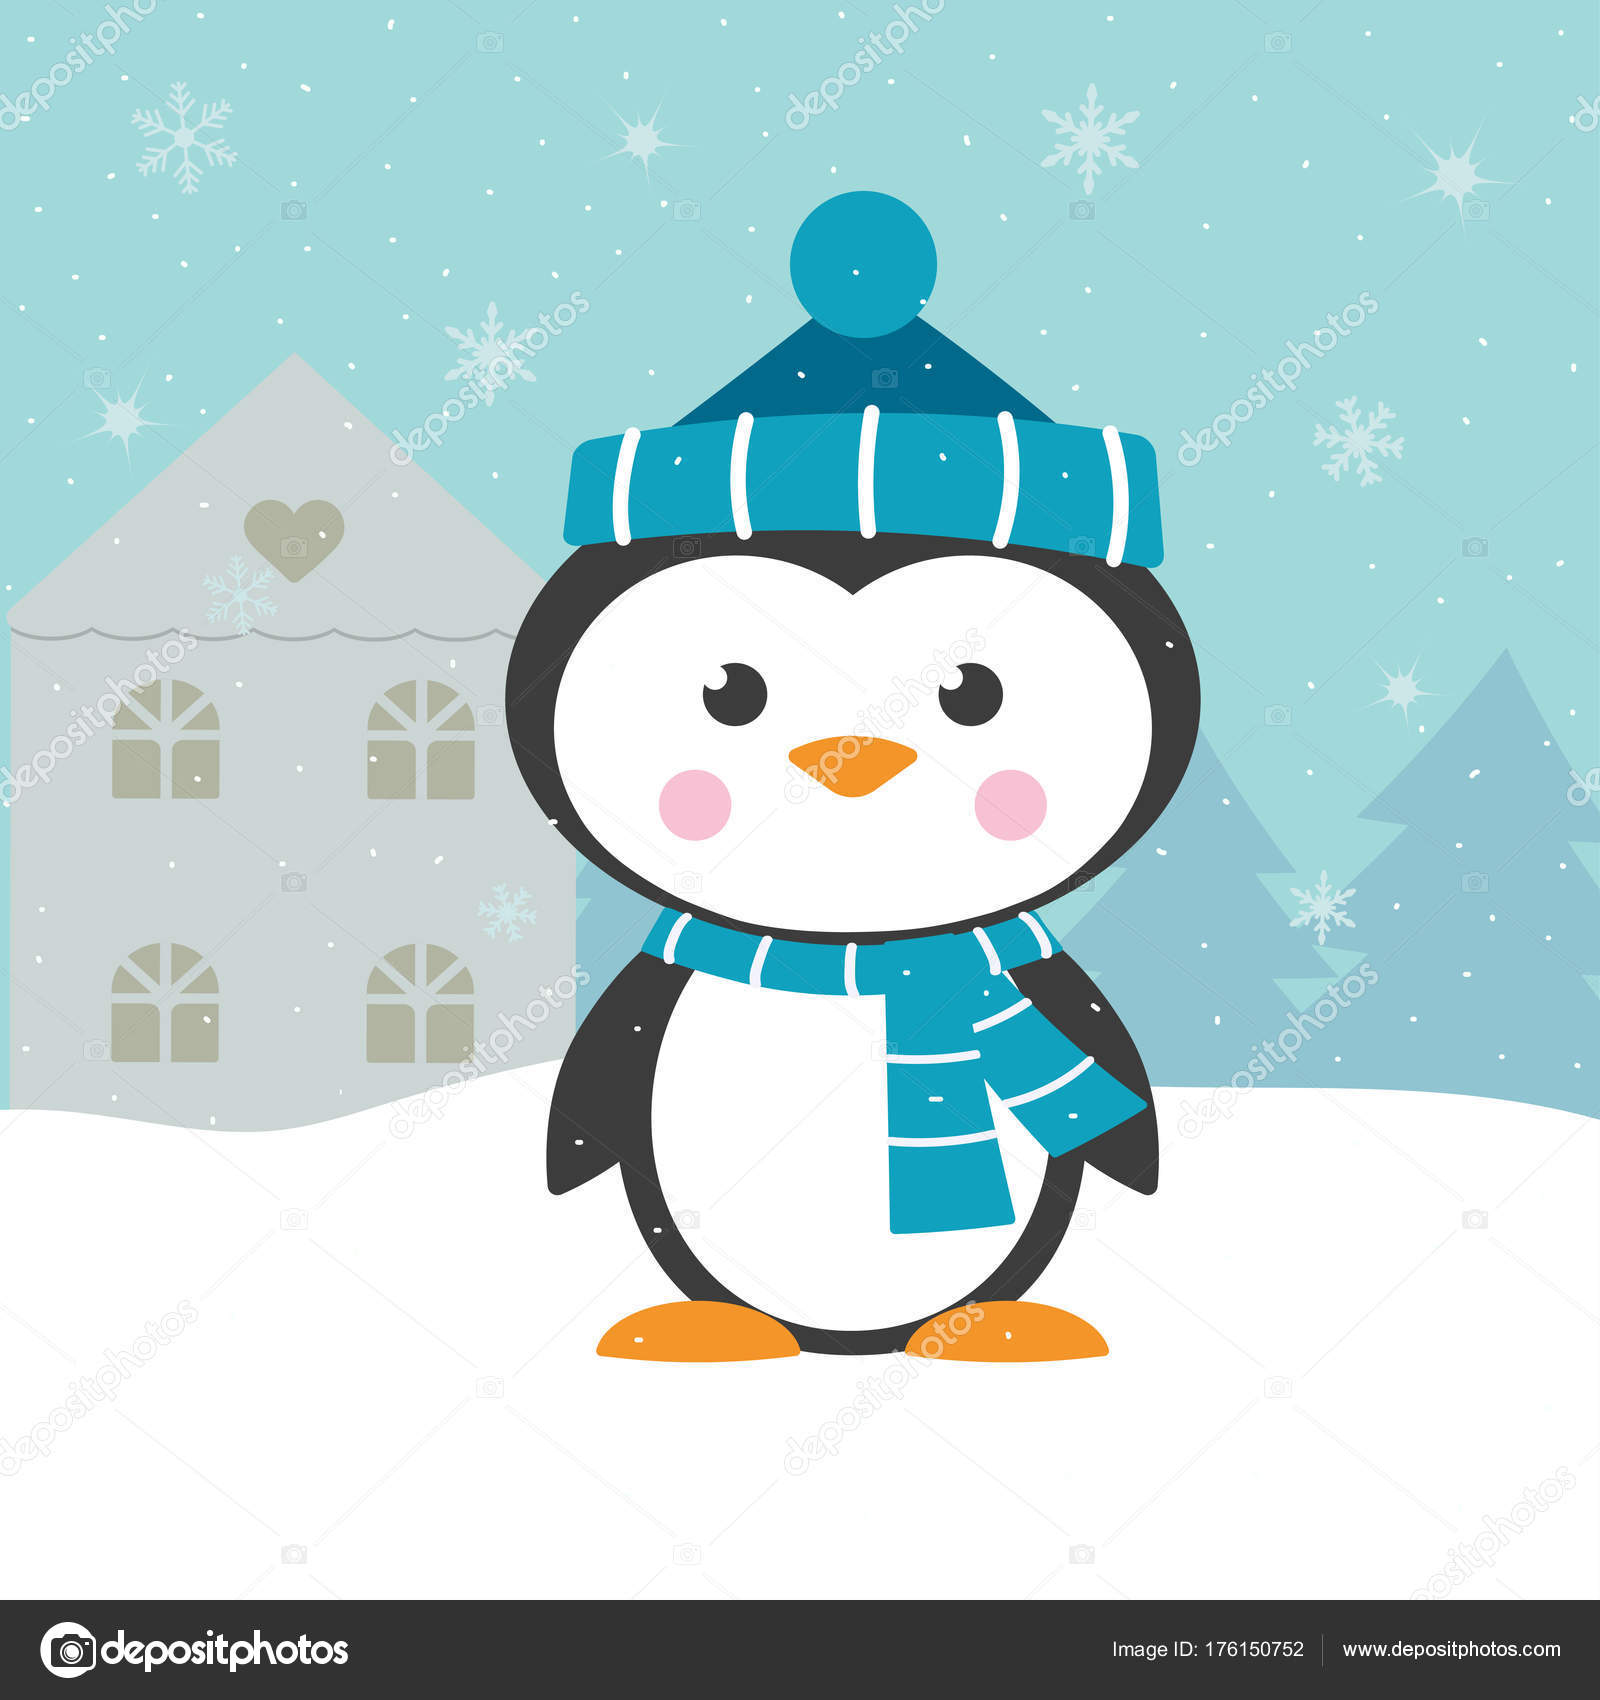 8c0d95985115cb Cartoon penguin isolated on winter background, christmas card with  snowflakes, snow, house, fir trees and cute animal in a hat and scarves —  Vector by ...